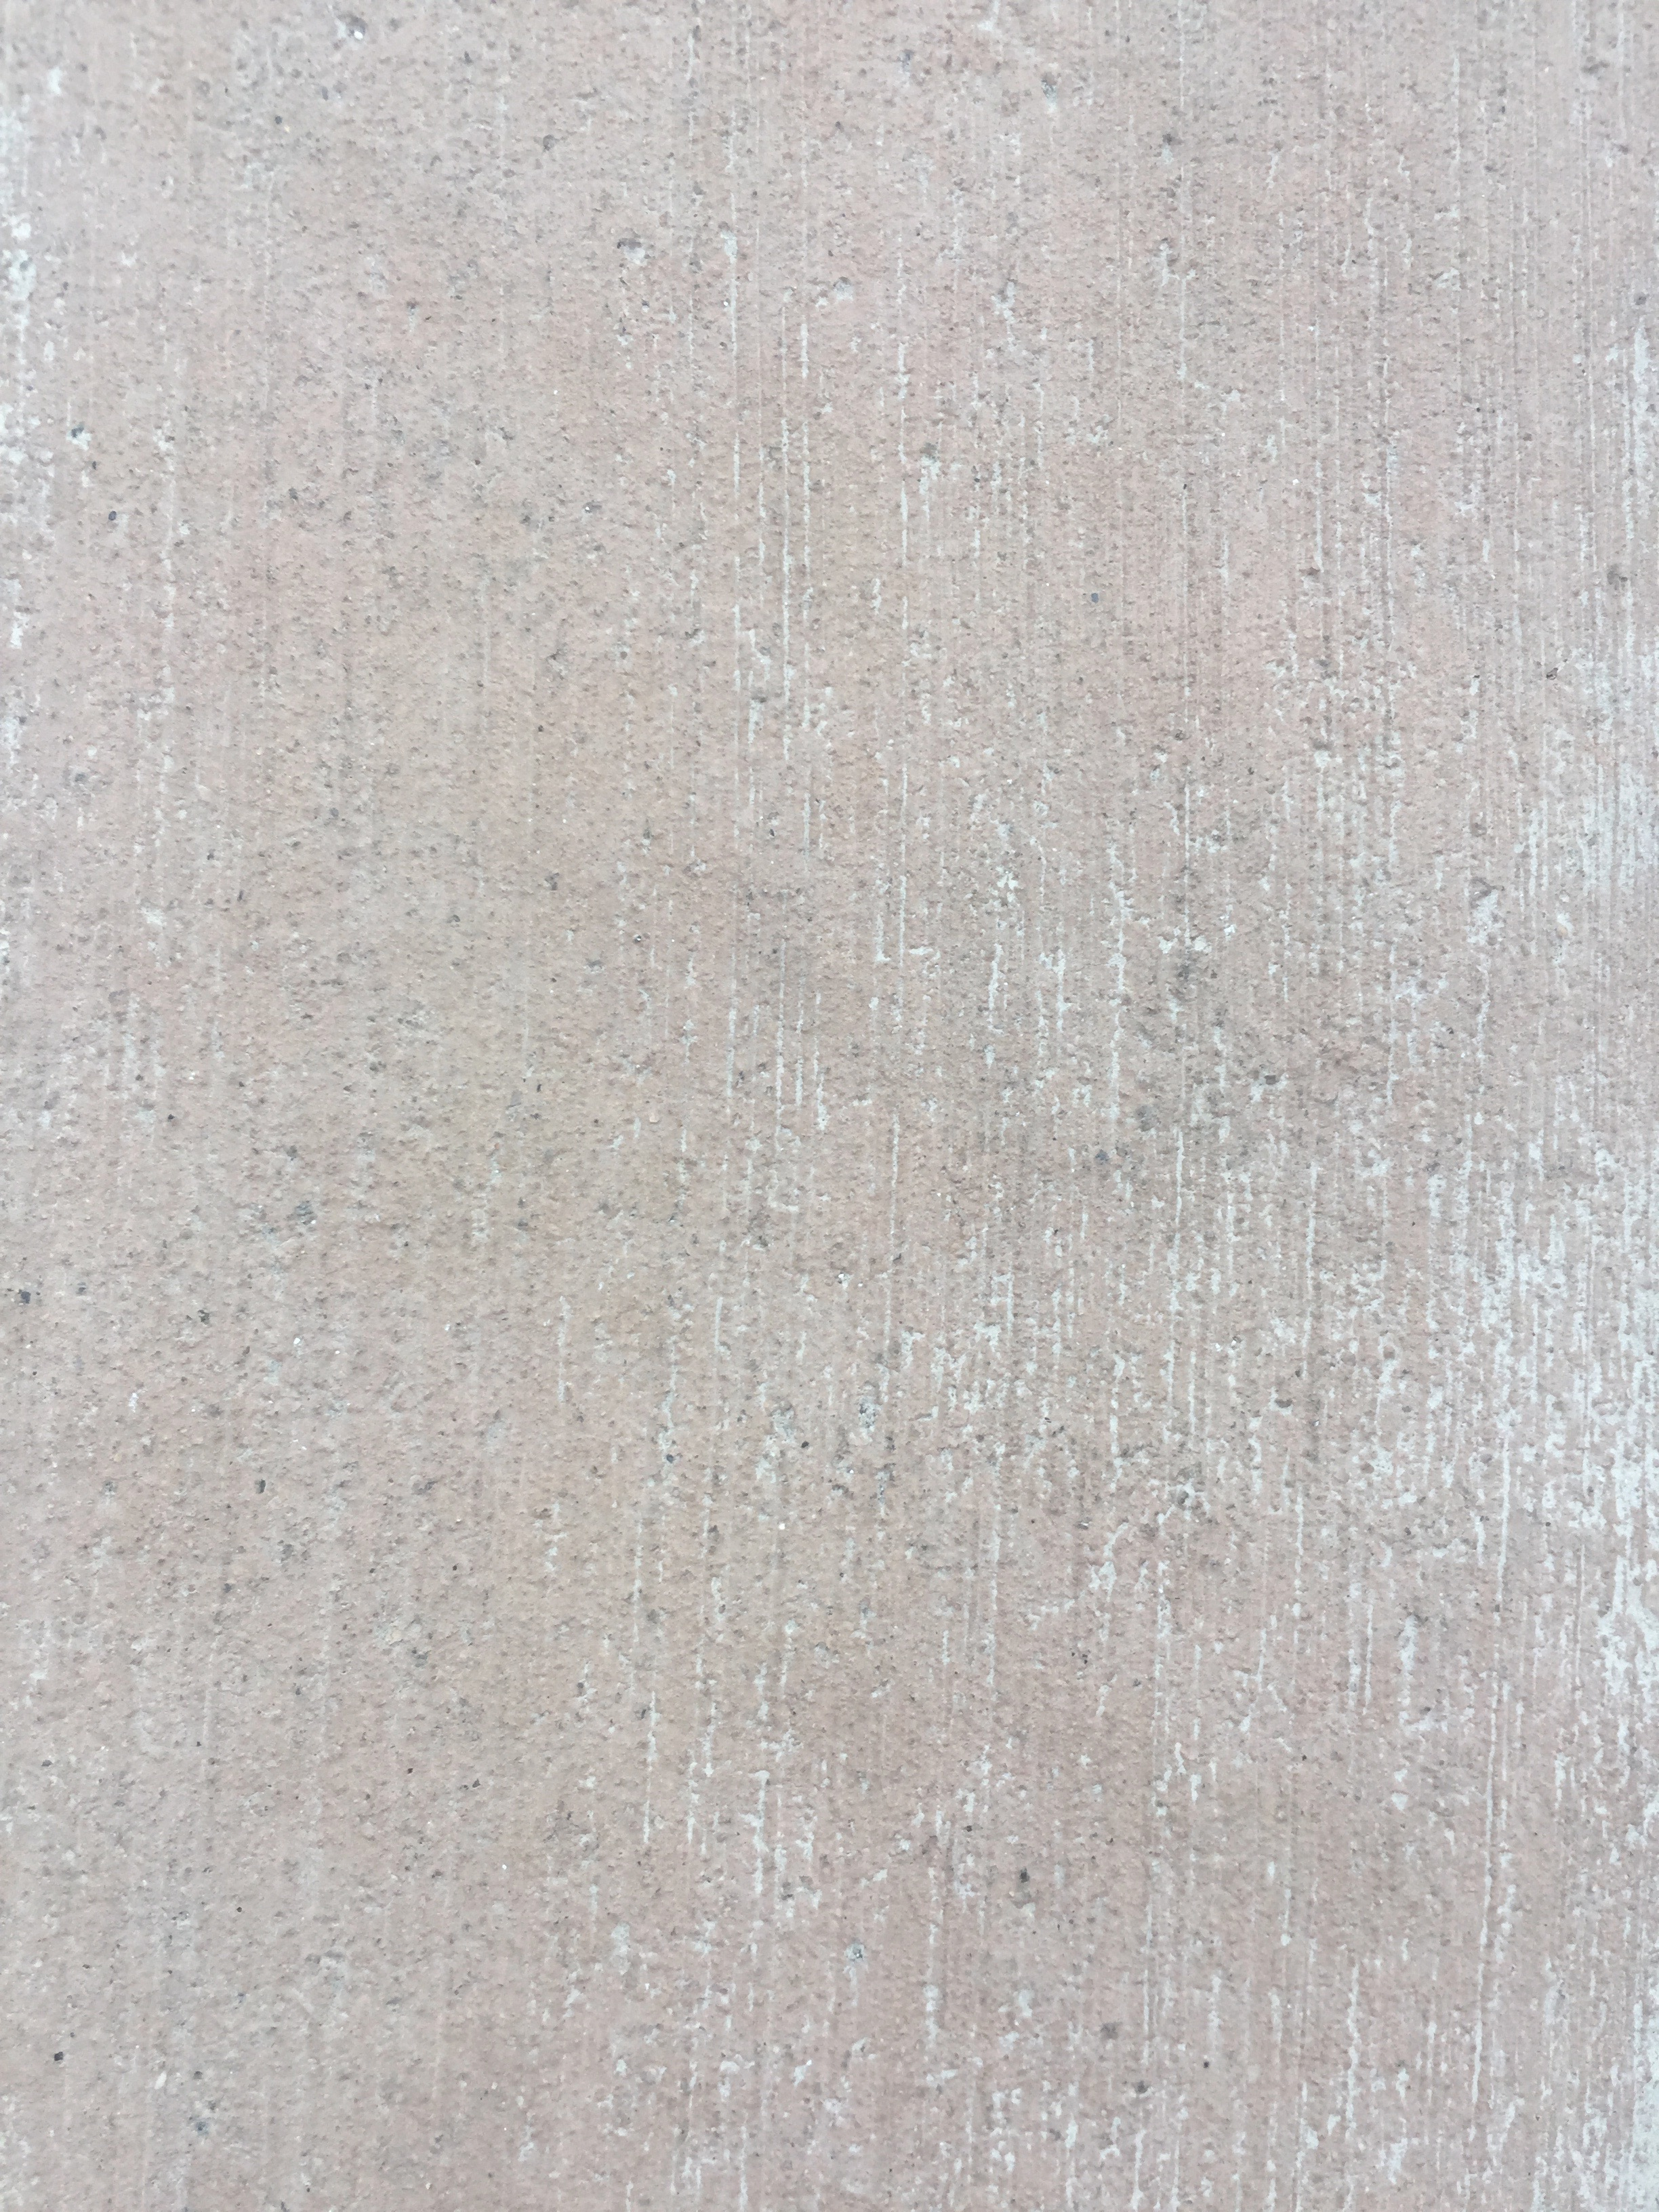 Beige concrete with vertical brush marks | Free Textures